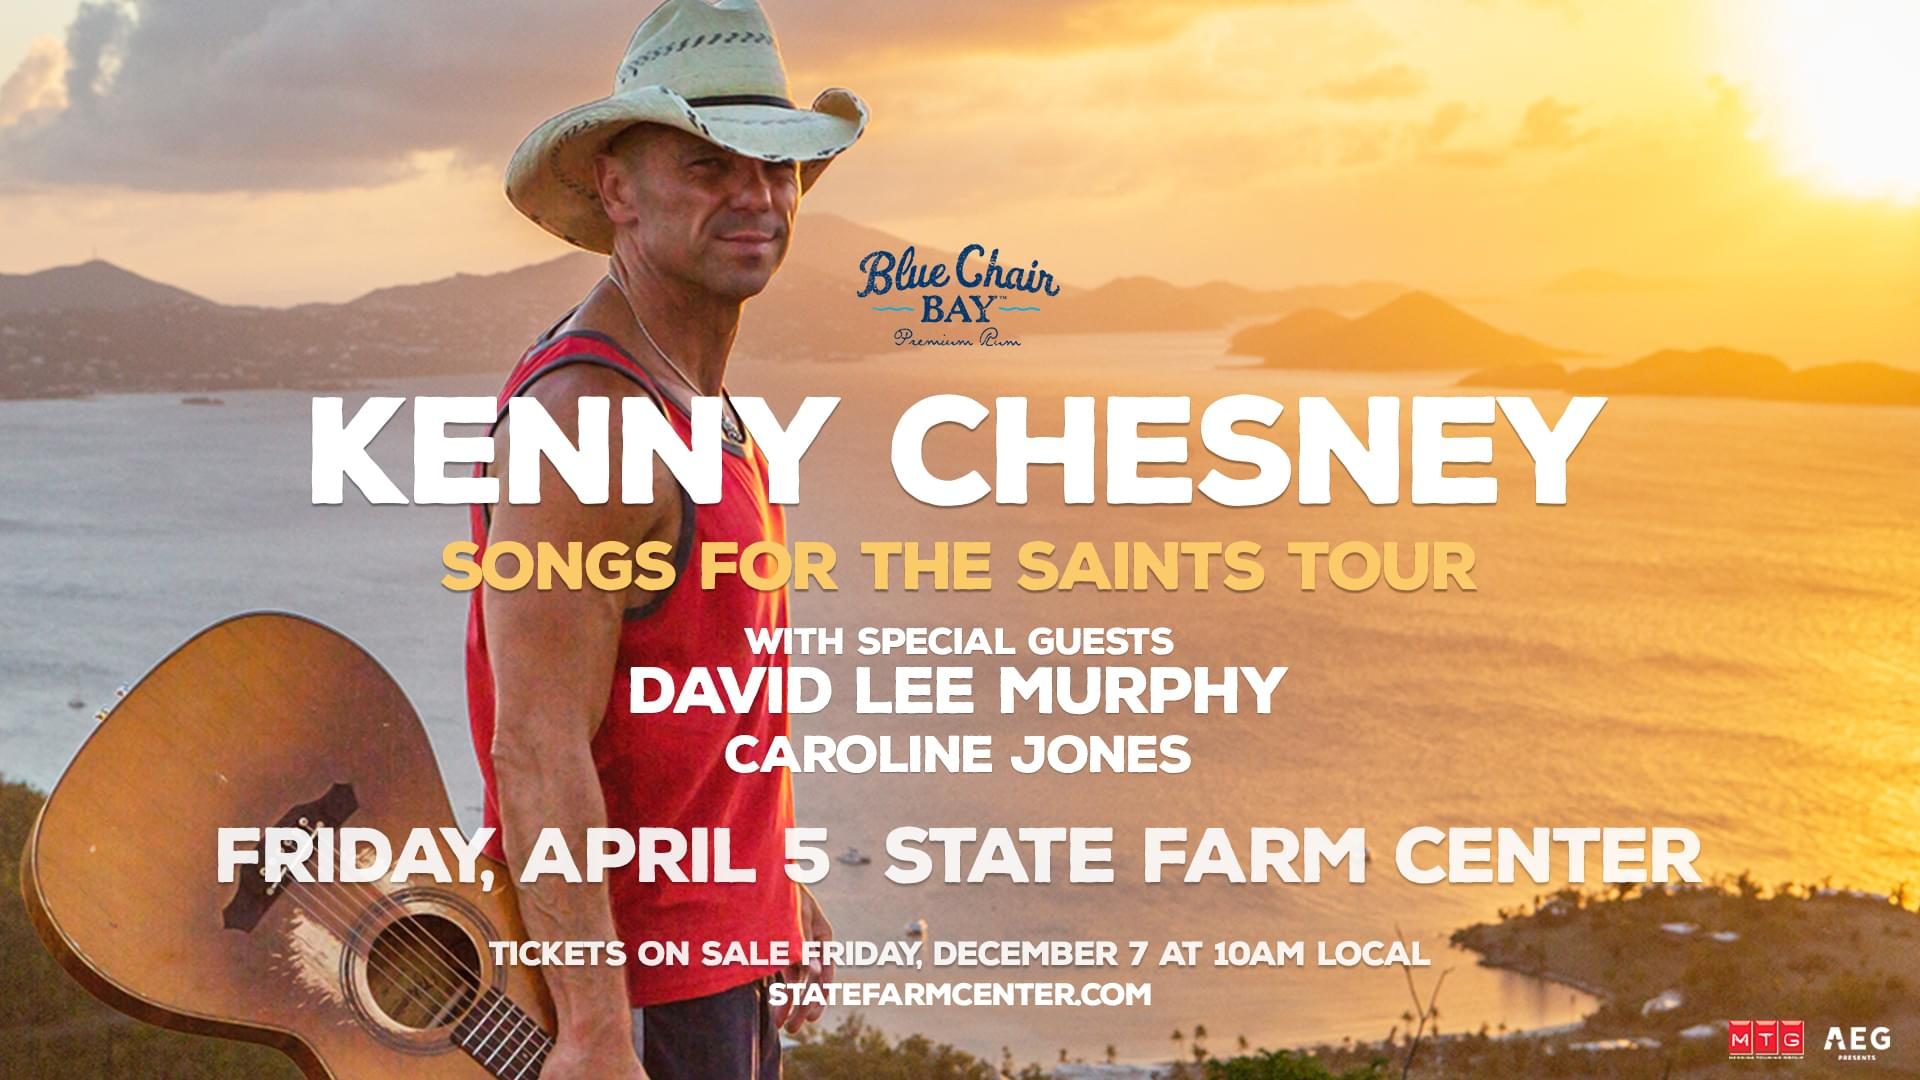 Kenny Chesney Tickets For Champaign On Sale Dec. 7th | WFMB-FM